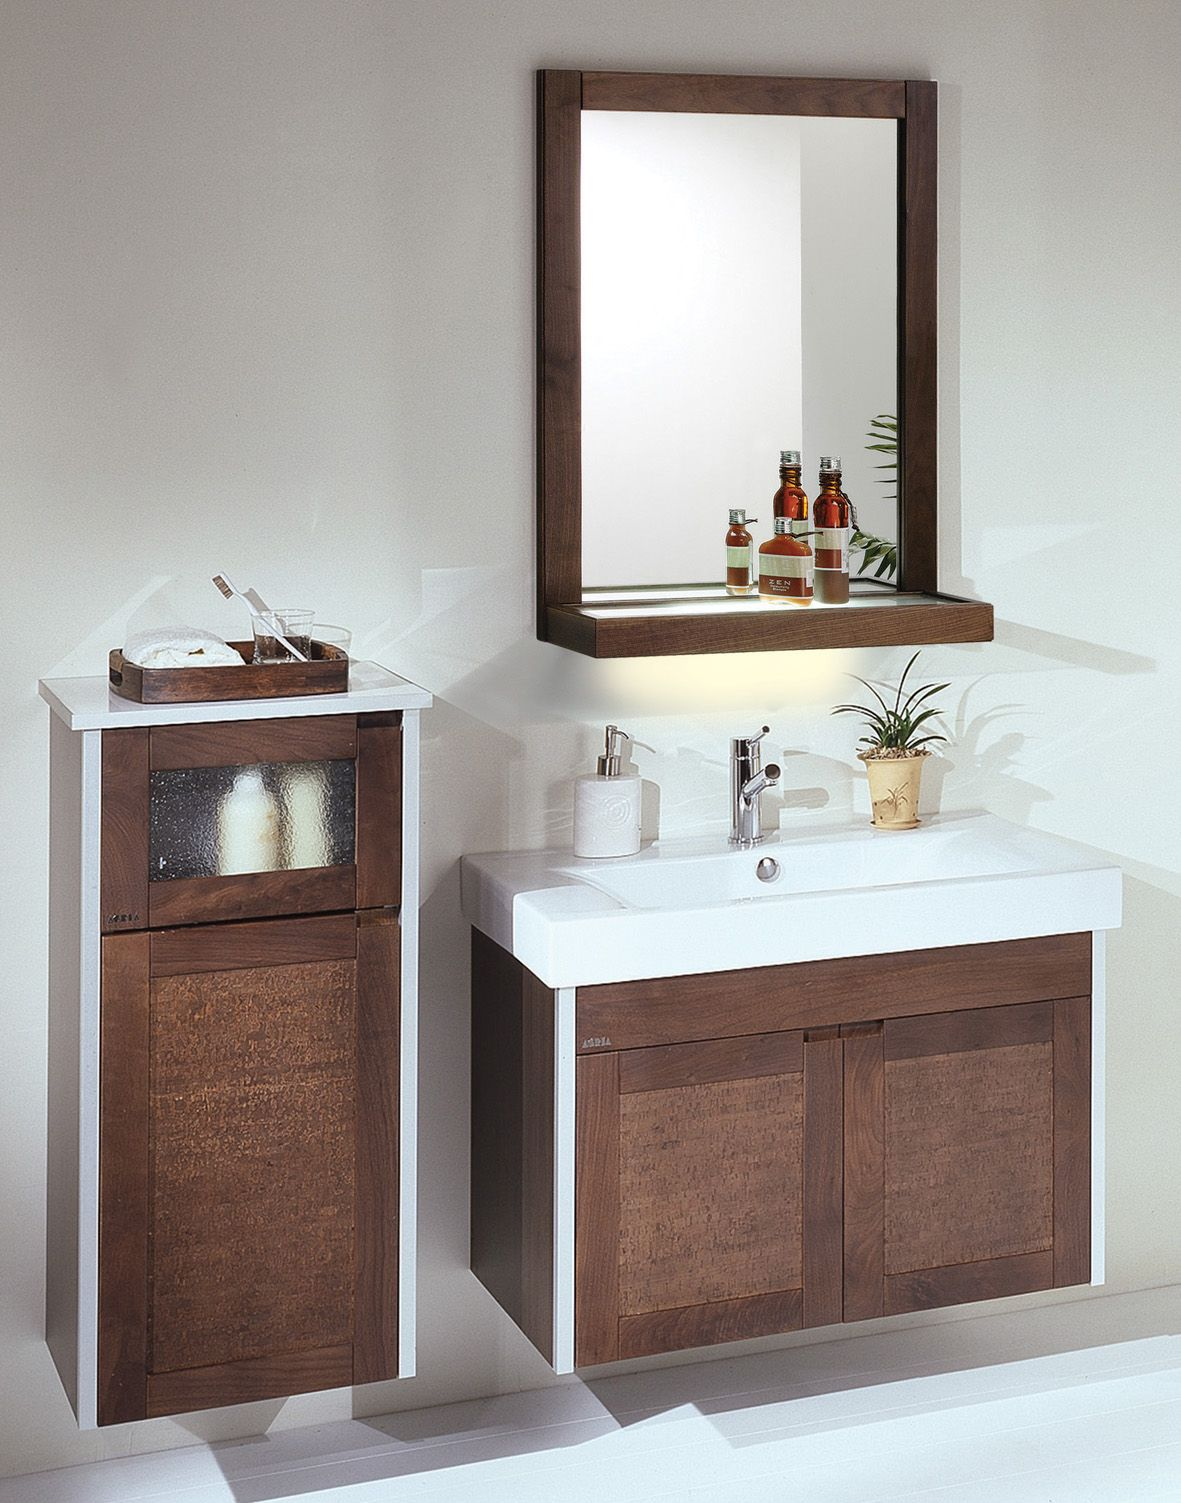 floating storage aside sink plus faucet under mirror filled on elegant bathroom - Bathroom Sink And Mirror